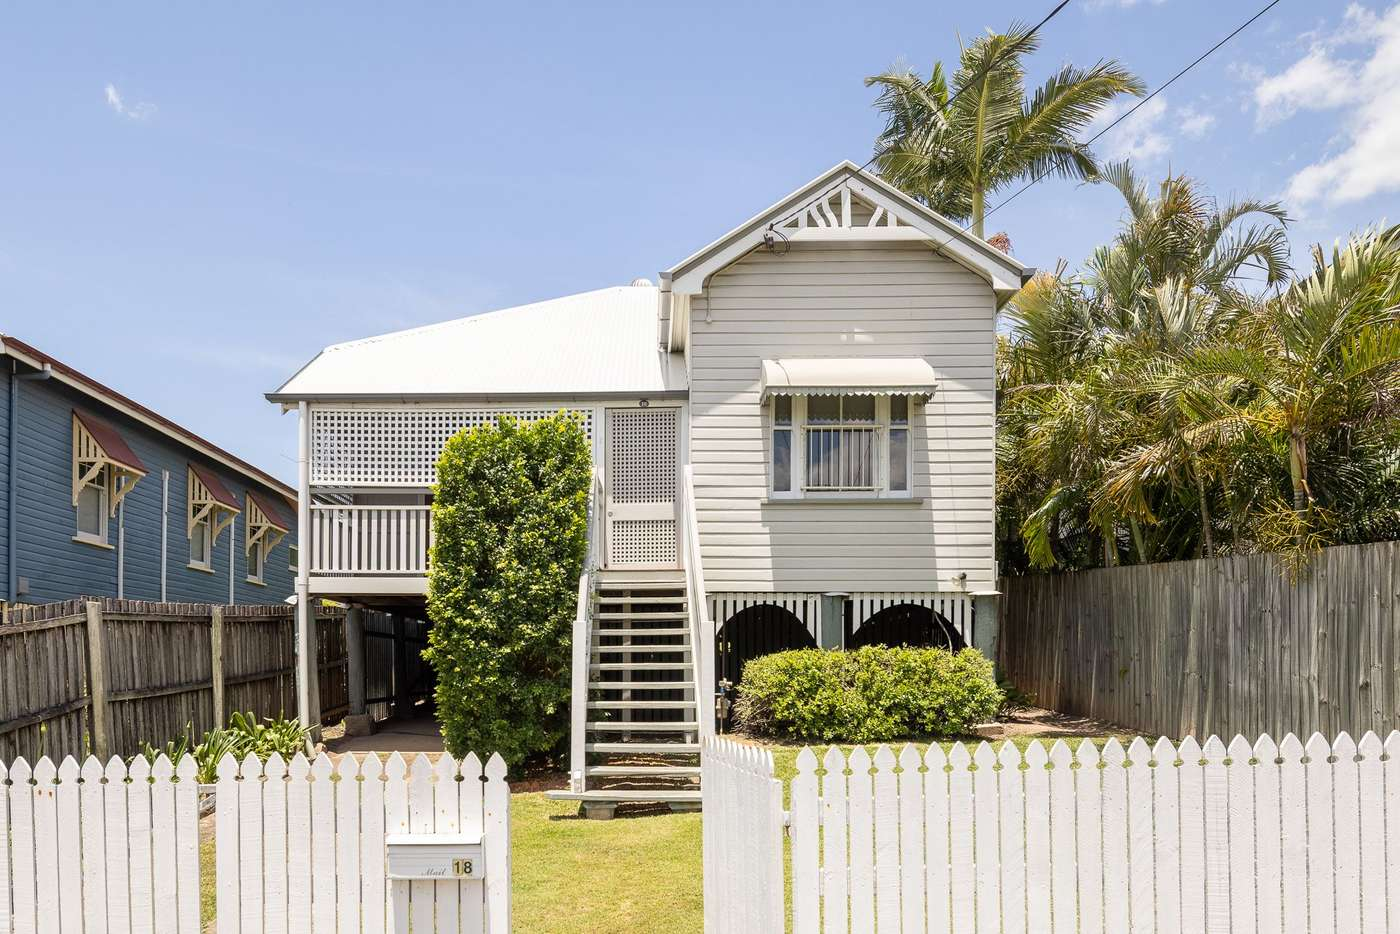 Main view of Homely house listing, 18 Morley Street, Toowong QLD 4066